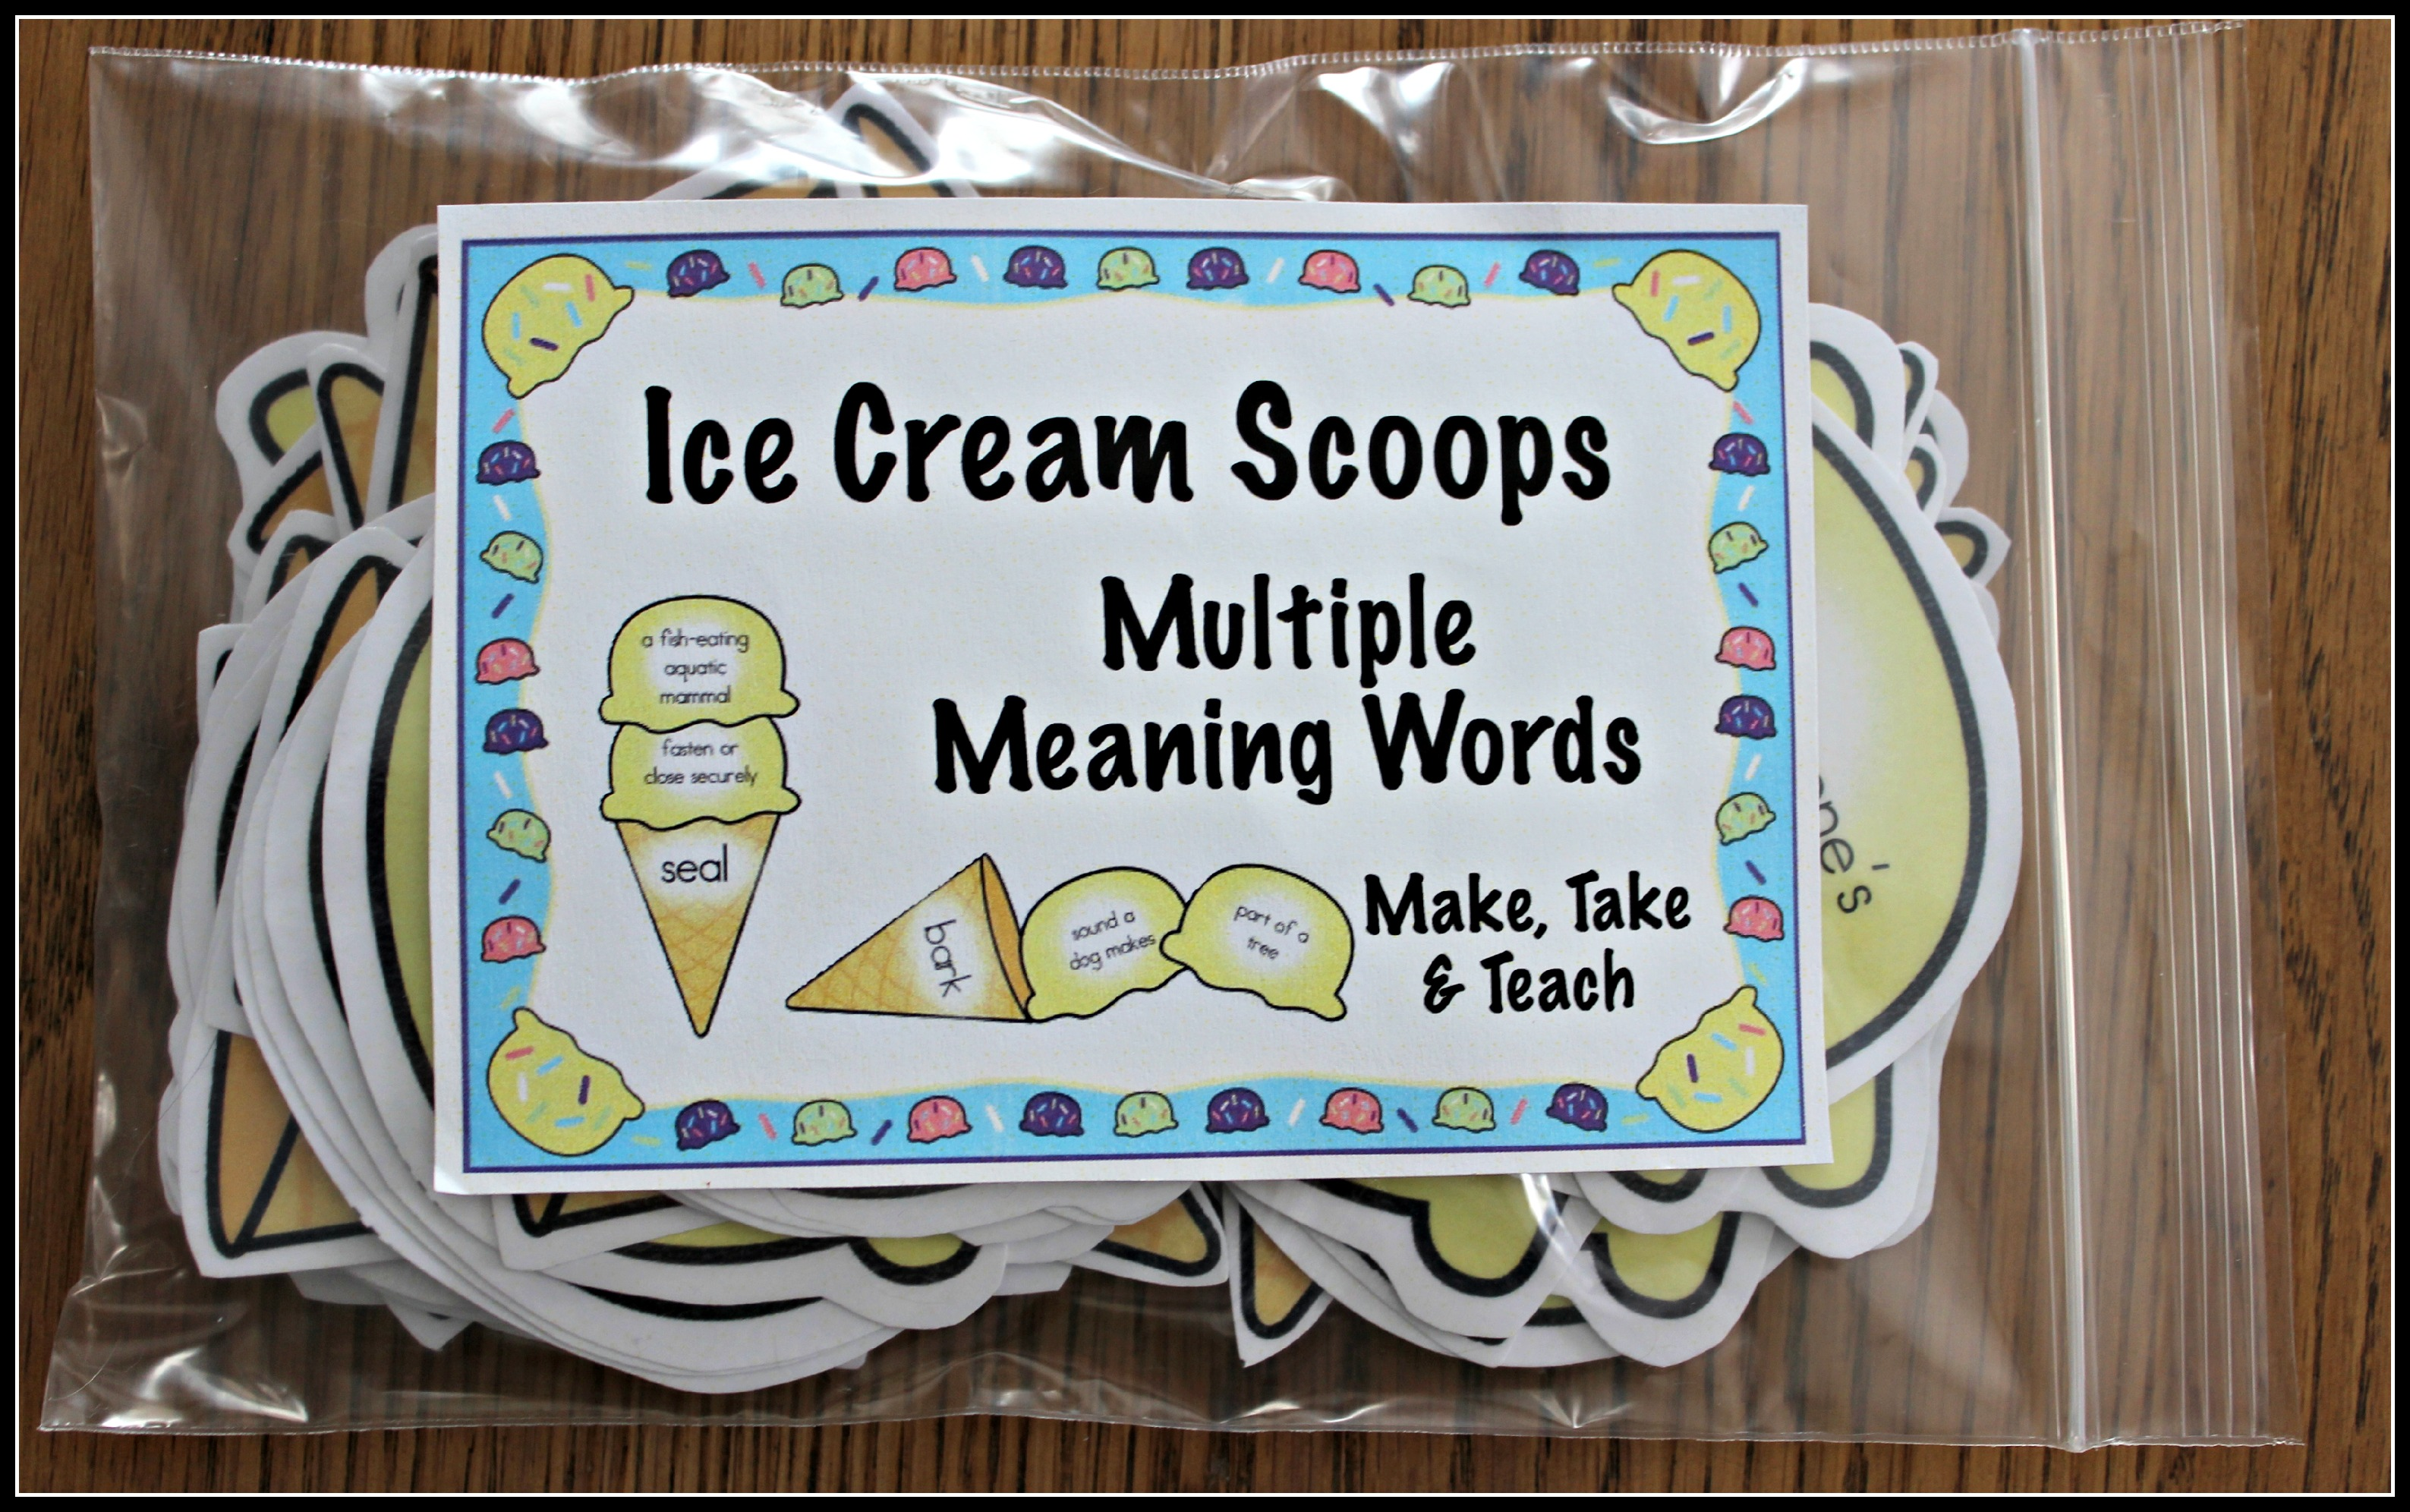 Multiple Meaning Words Ice Cream Scoops Make Take Teach